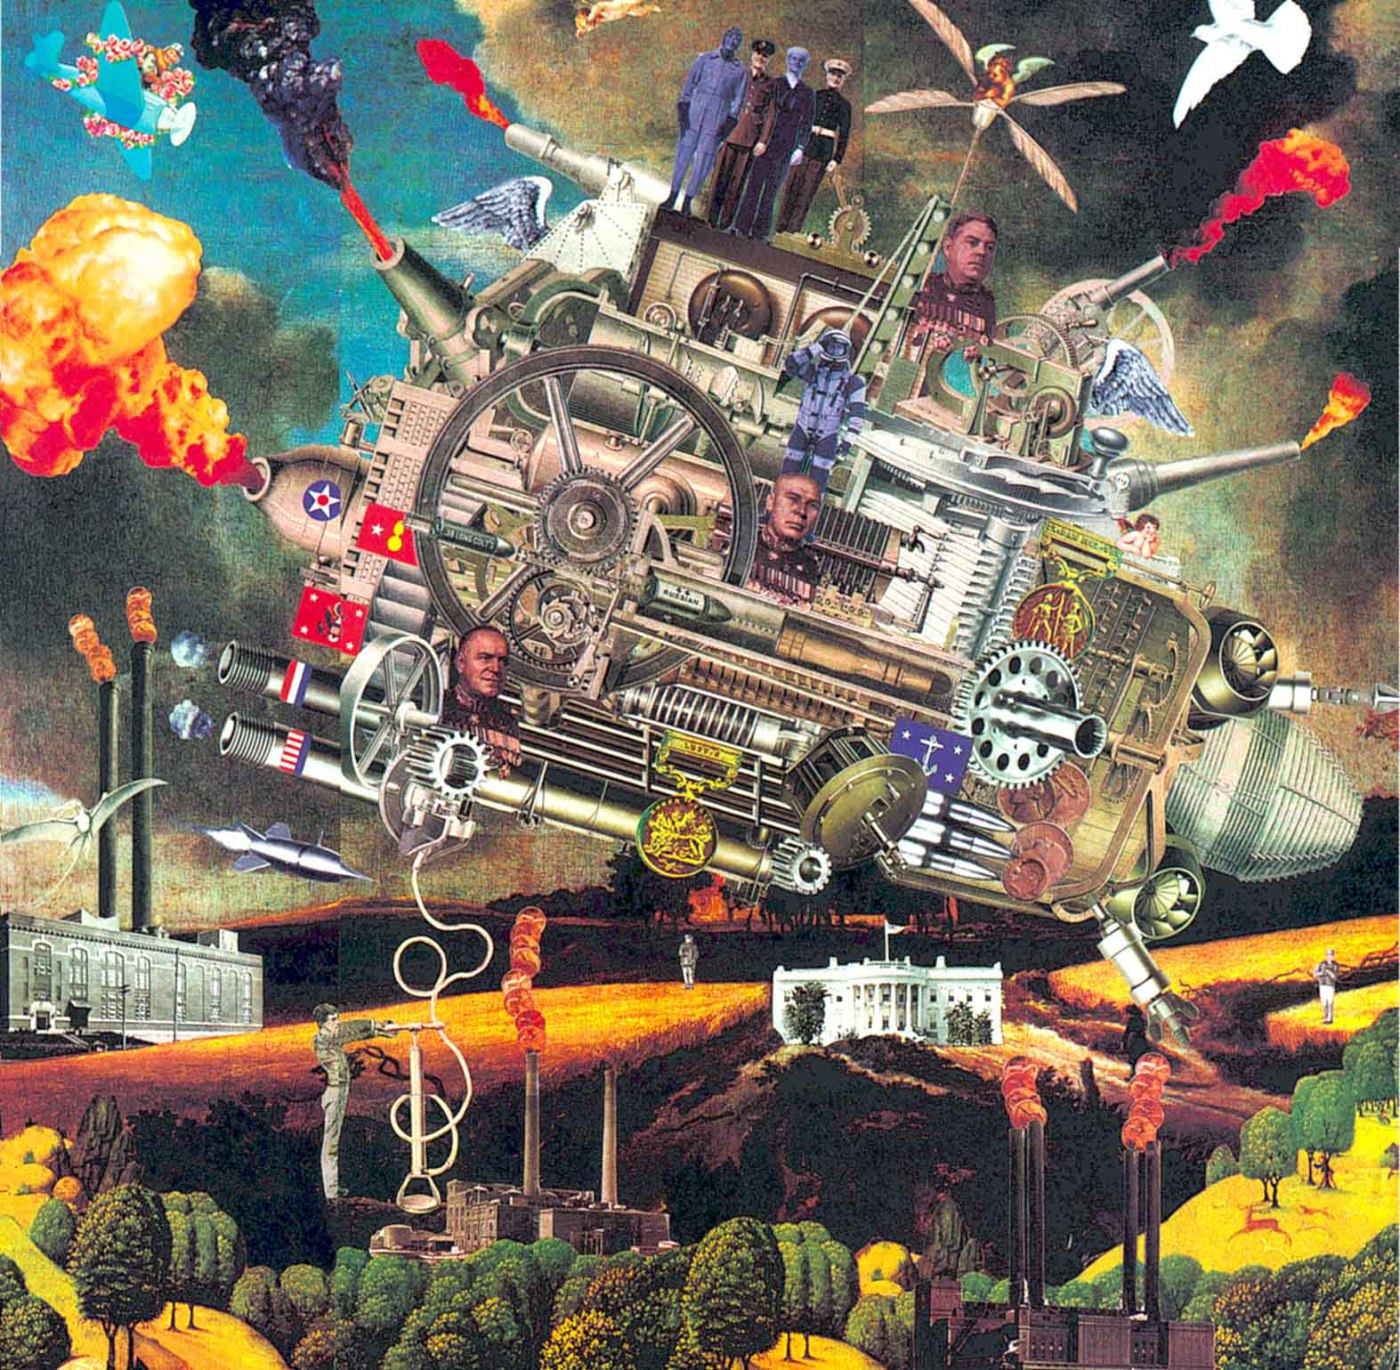 collage-illustrations-by-melissa-grimes_110115_4